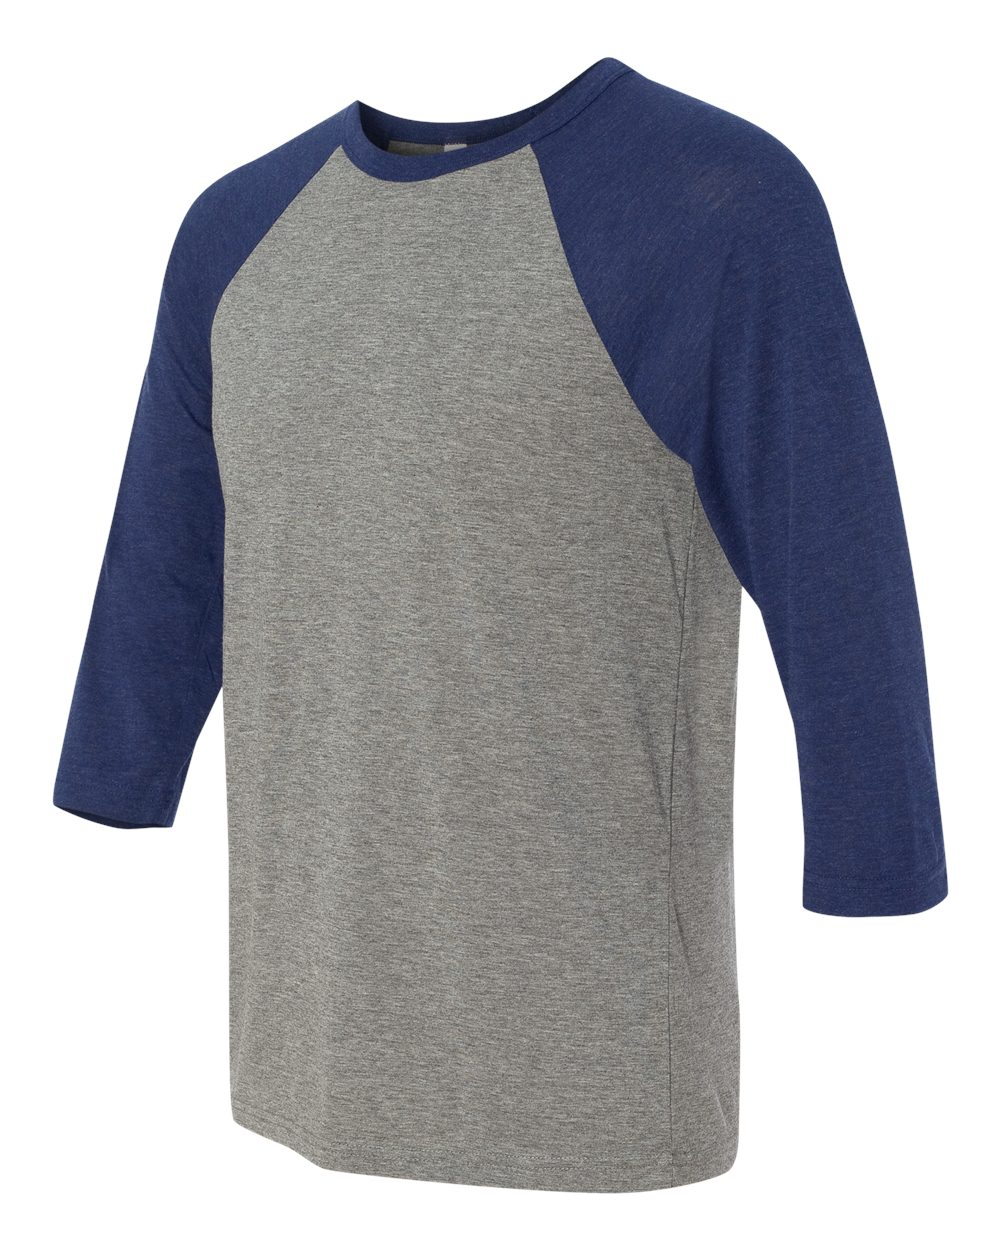 click to view Grey/Navy Triblend